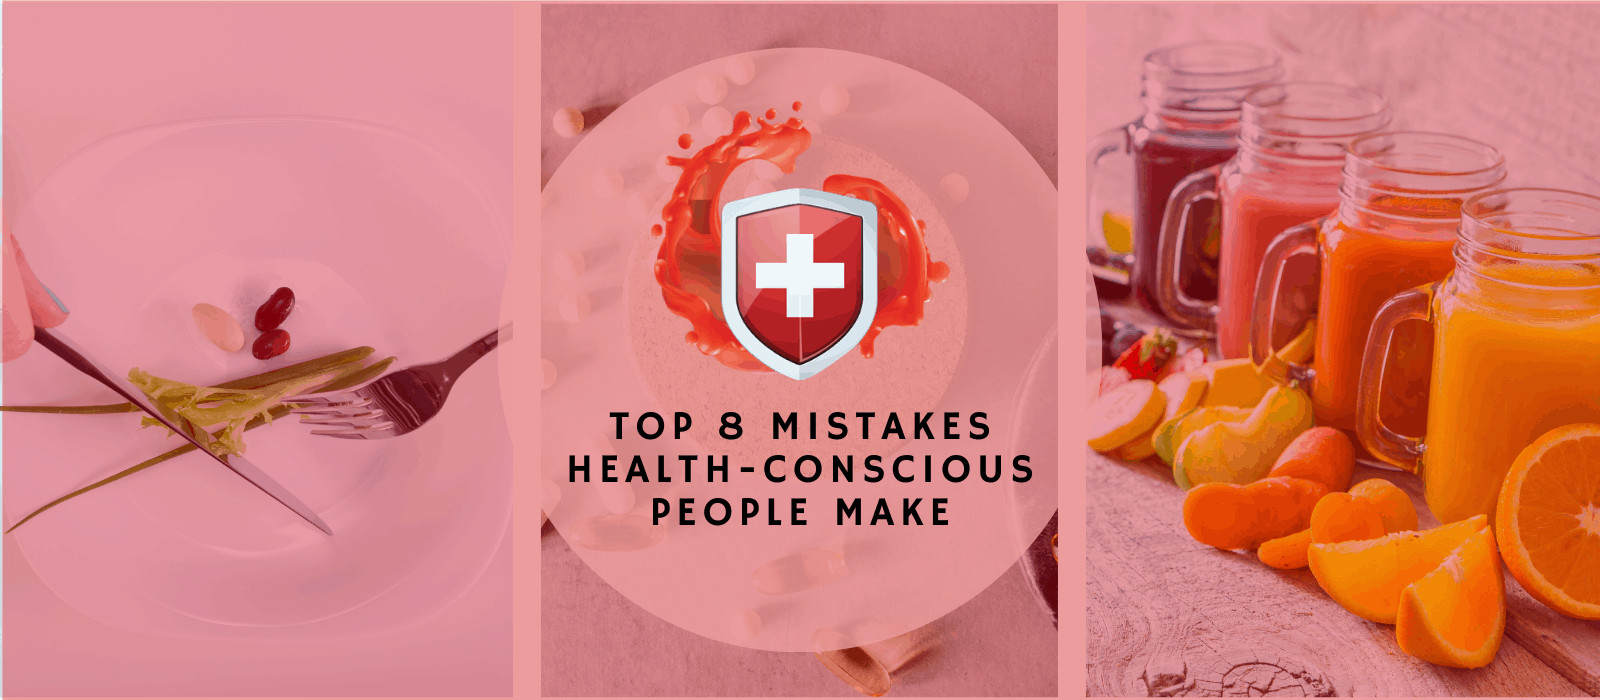 Mistakes Most Health-conscious Make